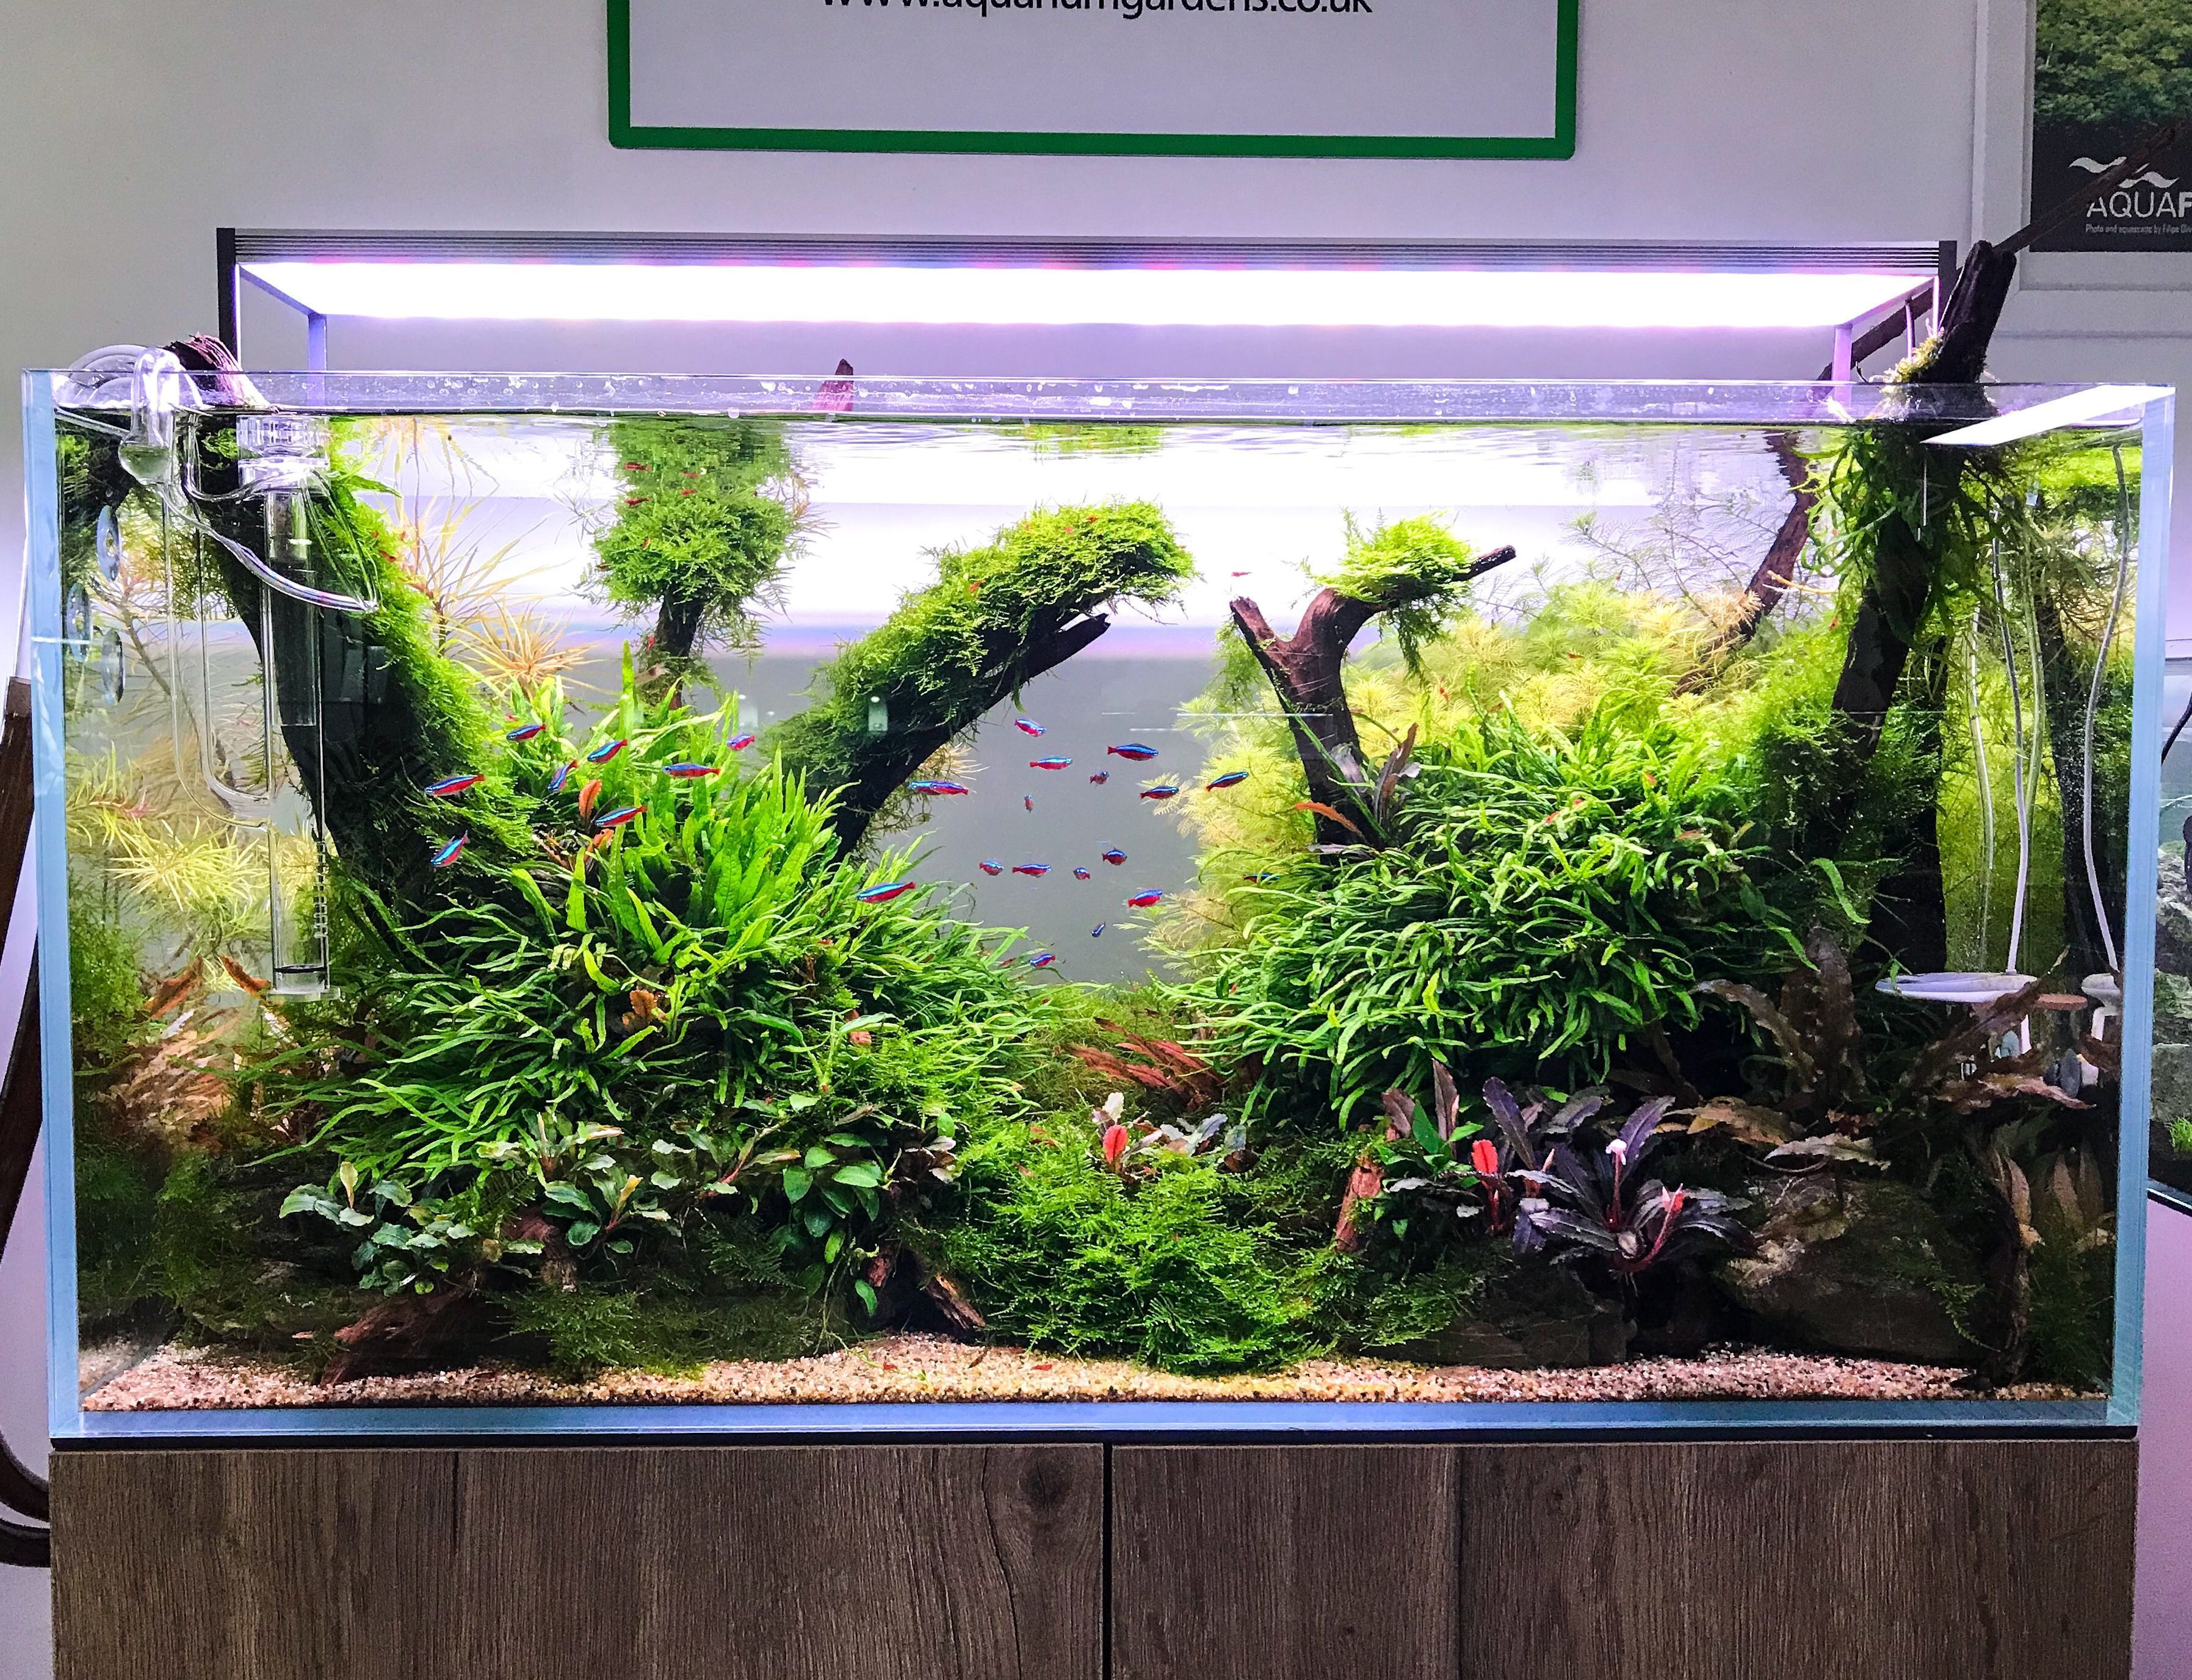 Aquascape In Store Gallery All Products Available To Buy From Our Website Aquariumgardens Co Uk Aquariumfreshw Nature Aquarium Aquarium Landscape Aquascape